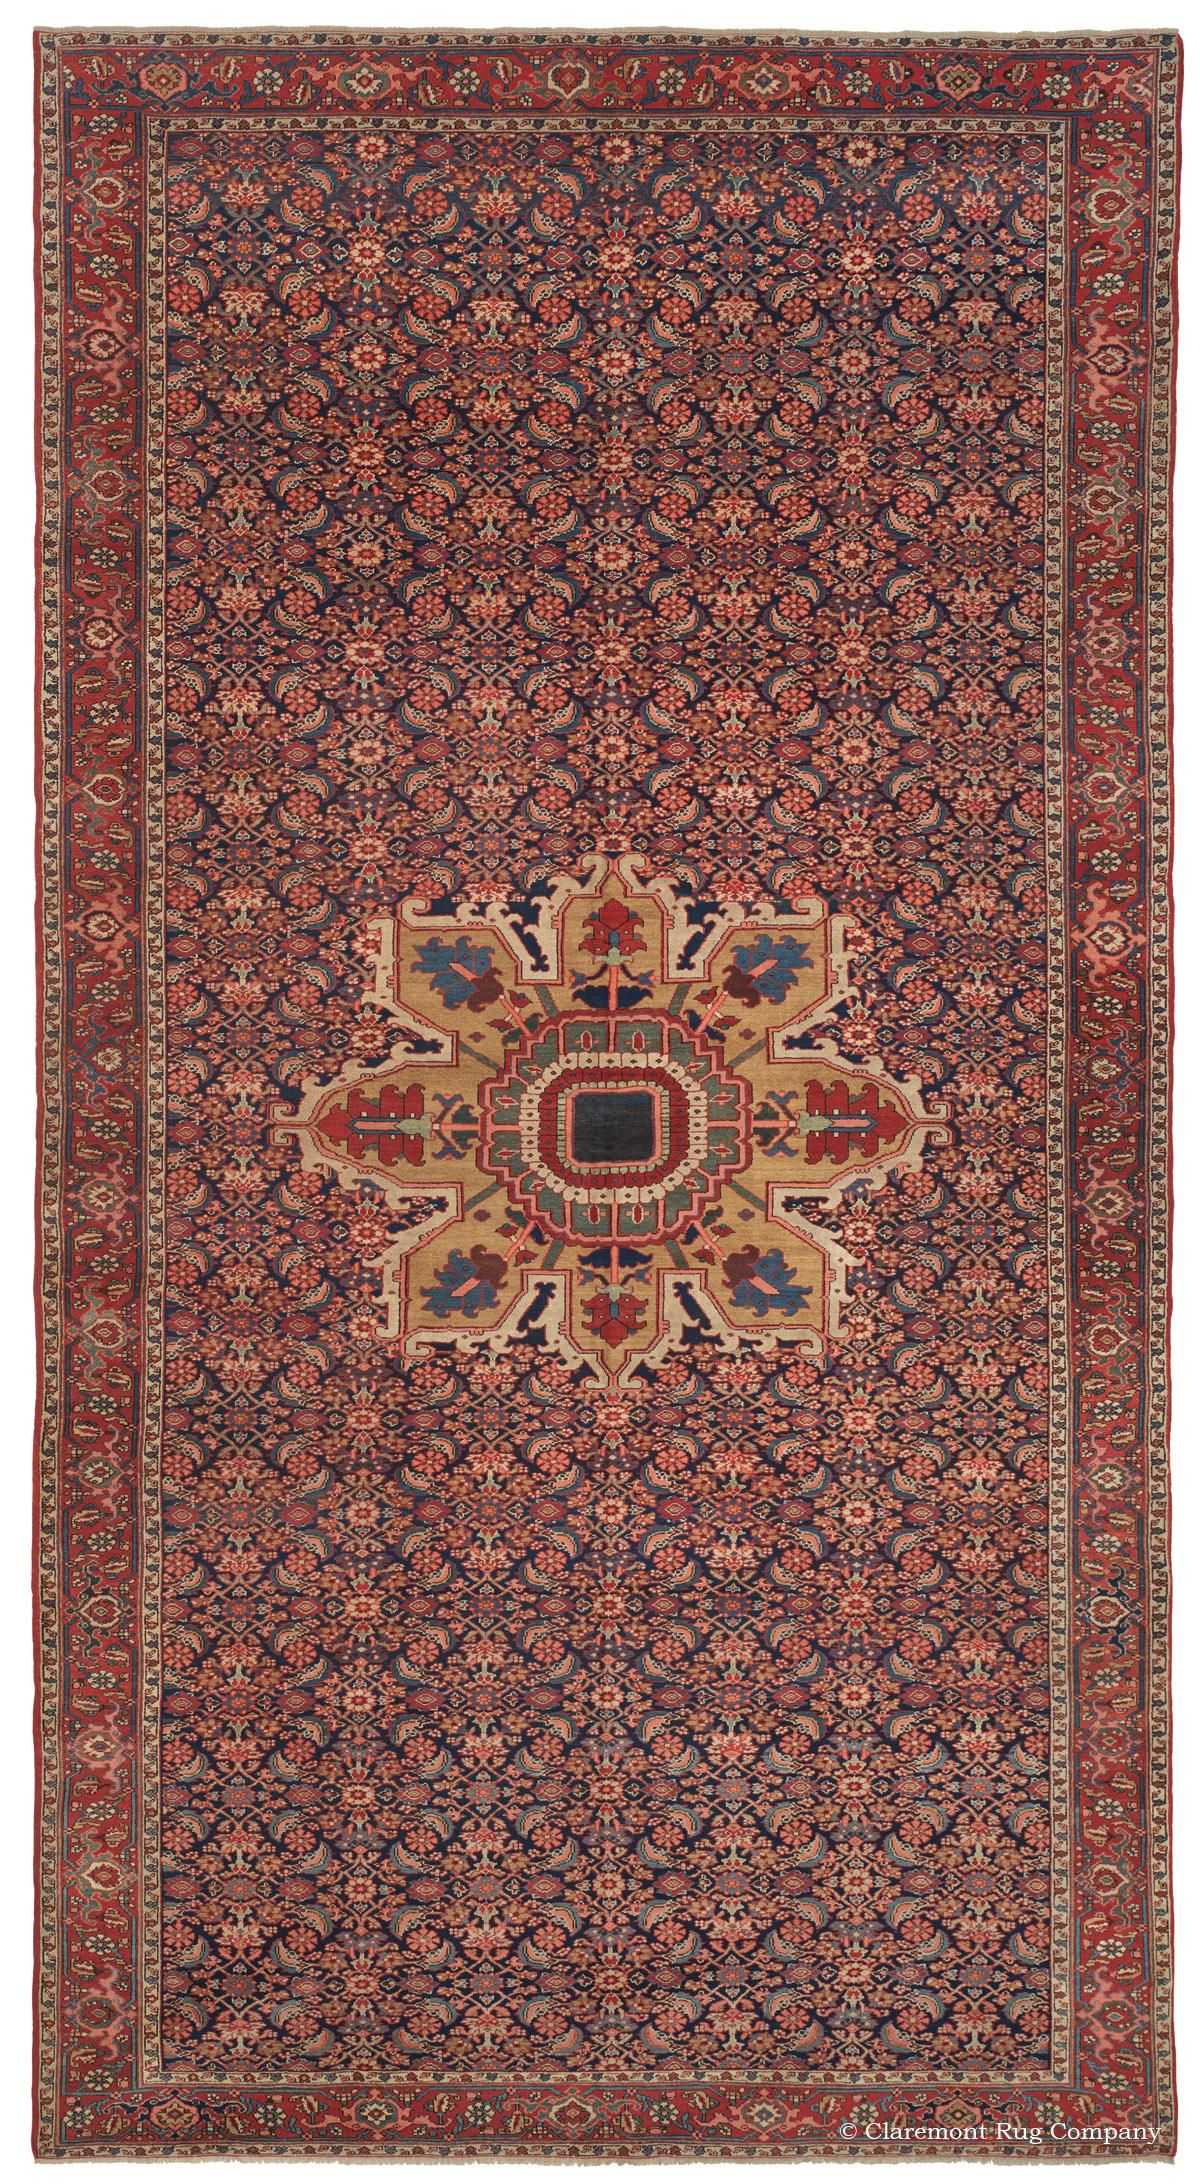 Serapi 9ft 10in X 18ft 5in Late 19th Century This Majestic Oversize Persian Serapi Carpet Uses Its Very S Rugs Vintage Persian Rug Claremont Rug Company